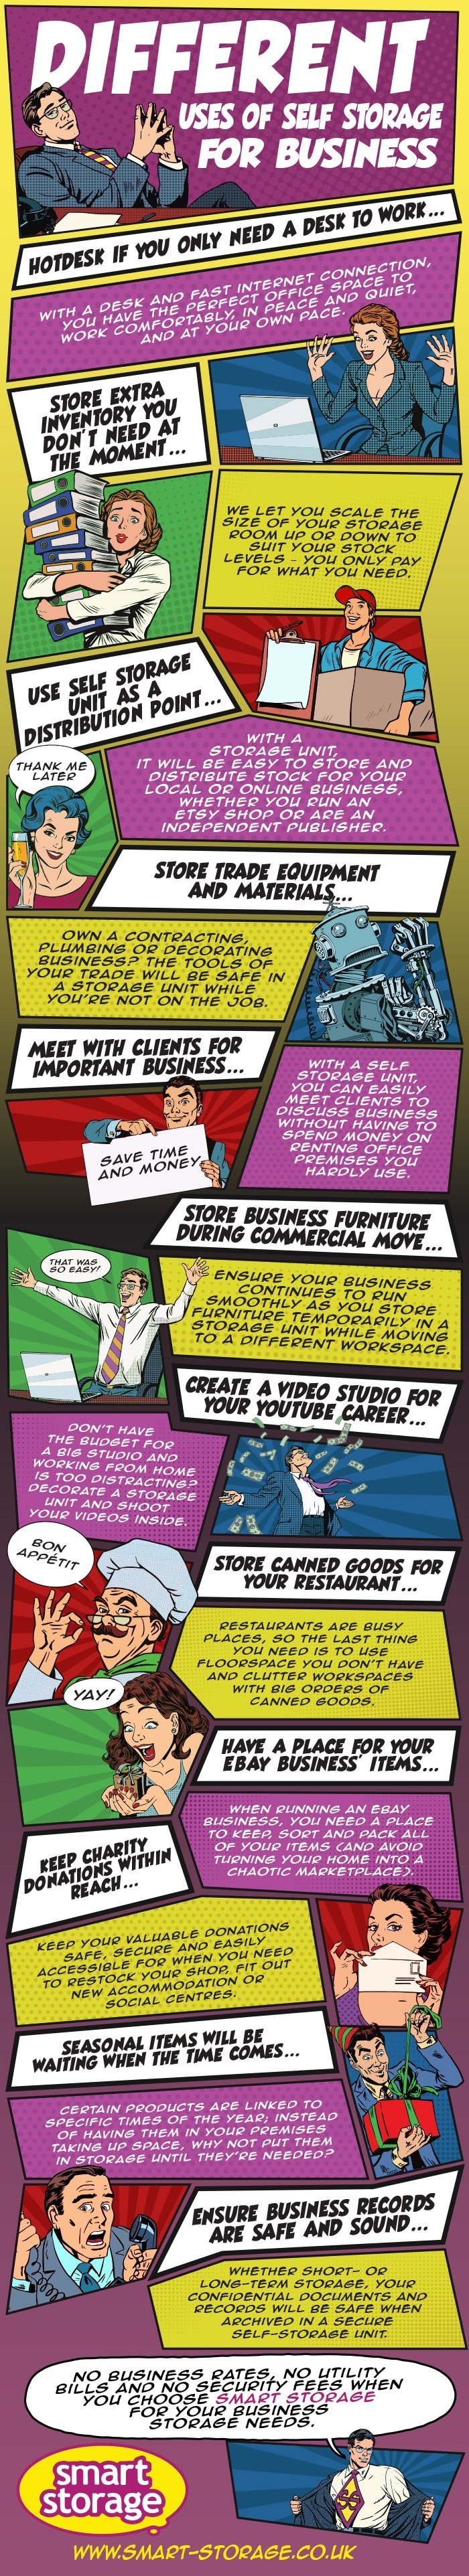 Self Storage for Business Infographic